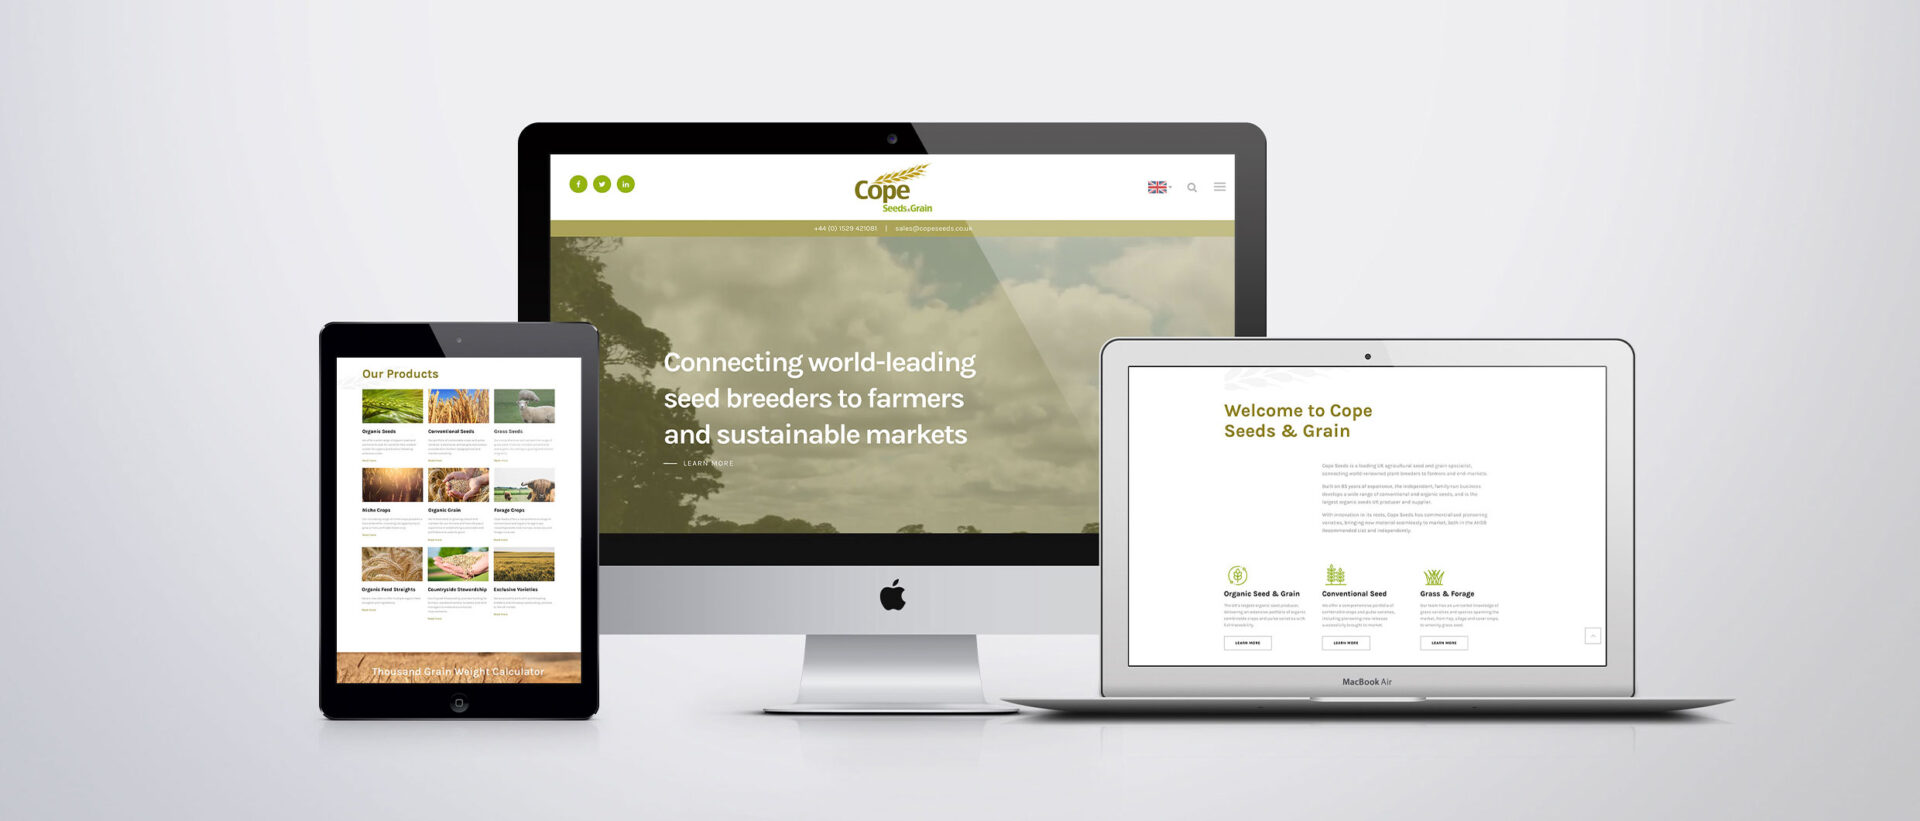 Cope Seeds & Grain – Website Design